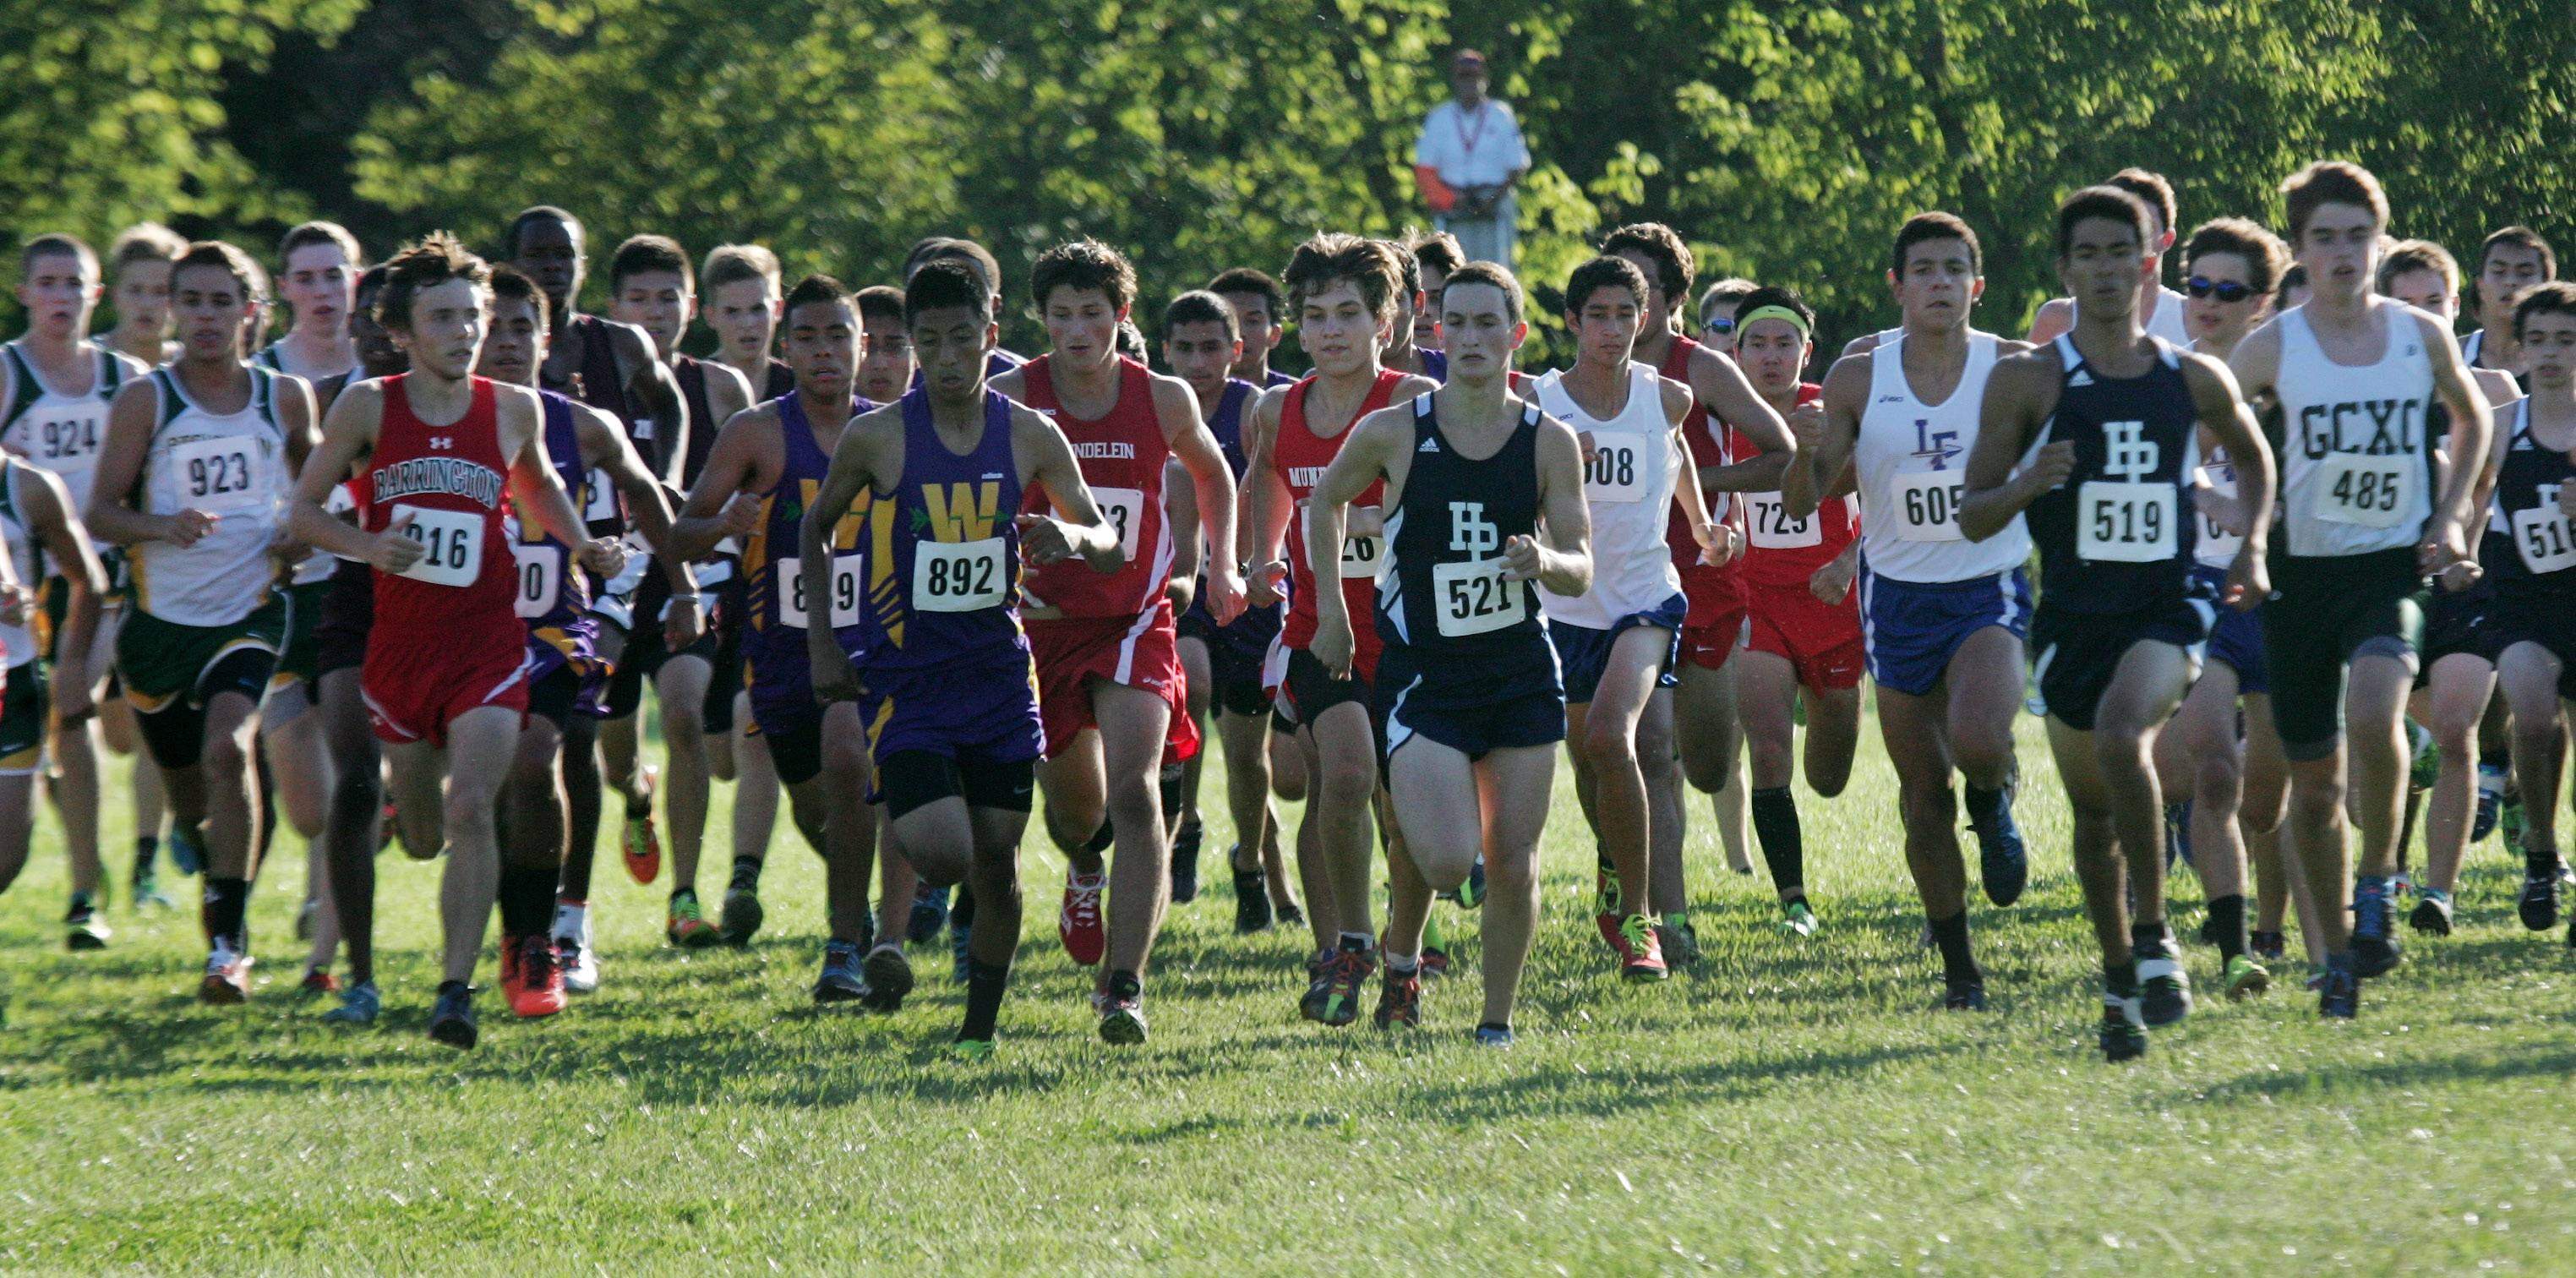 The start of the Lake County/Art Campbell Invitational on Wednesday at Lakewood Forest Preserve near Wauconda.